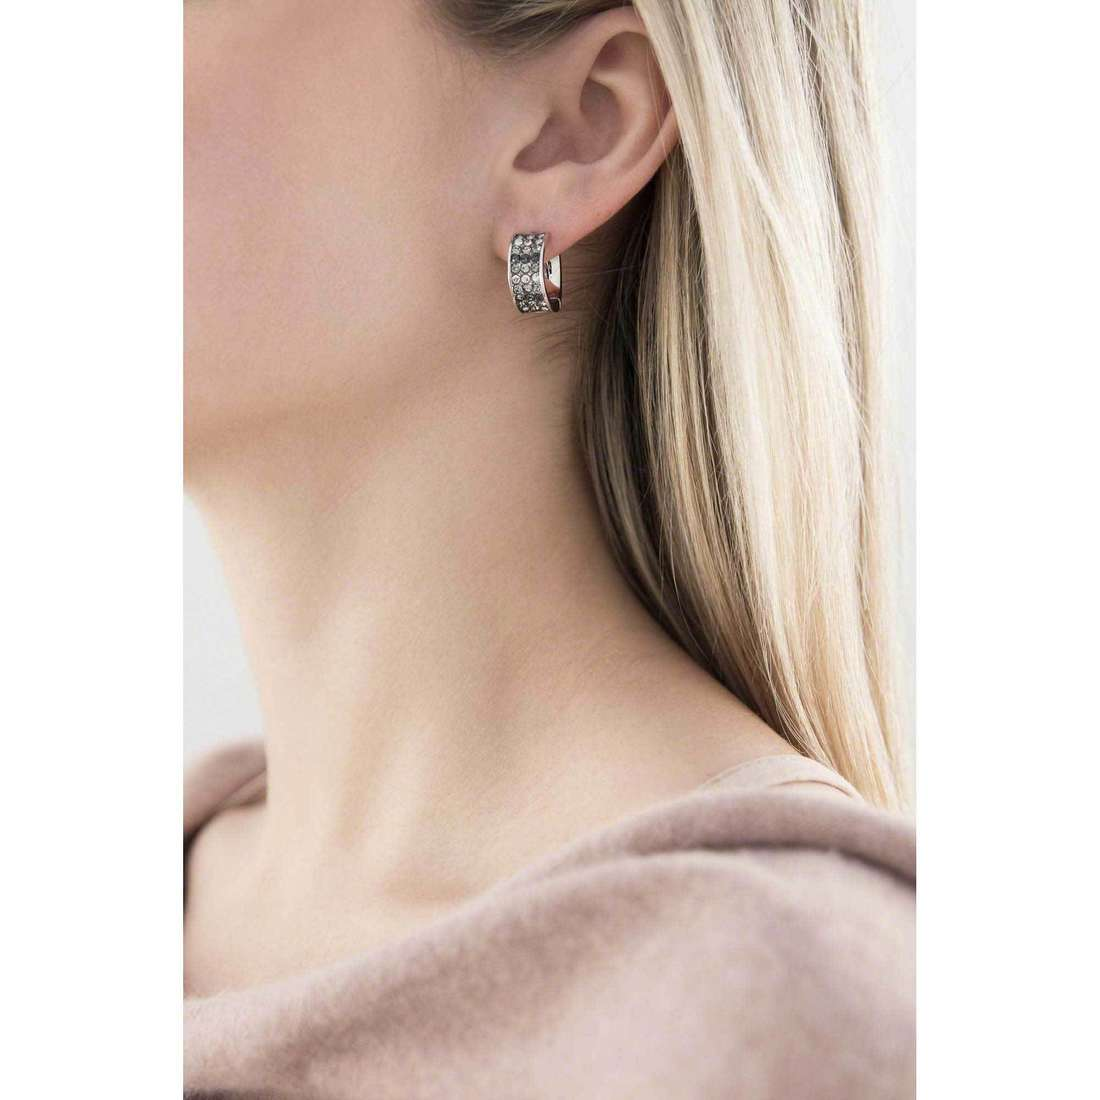 Guess boucles d'oreille femme UBE71544 indosso